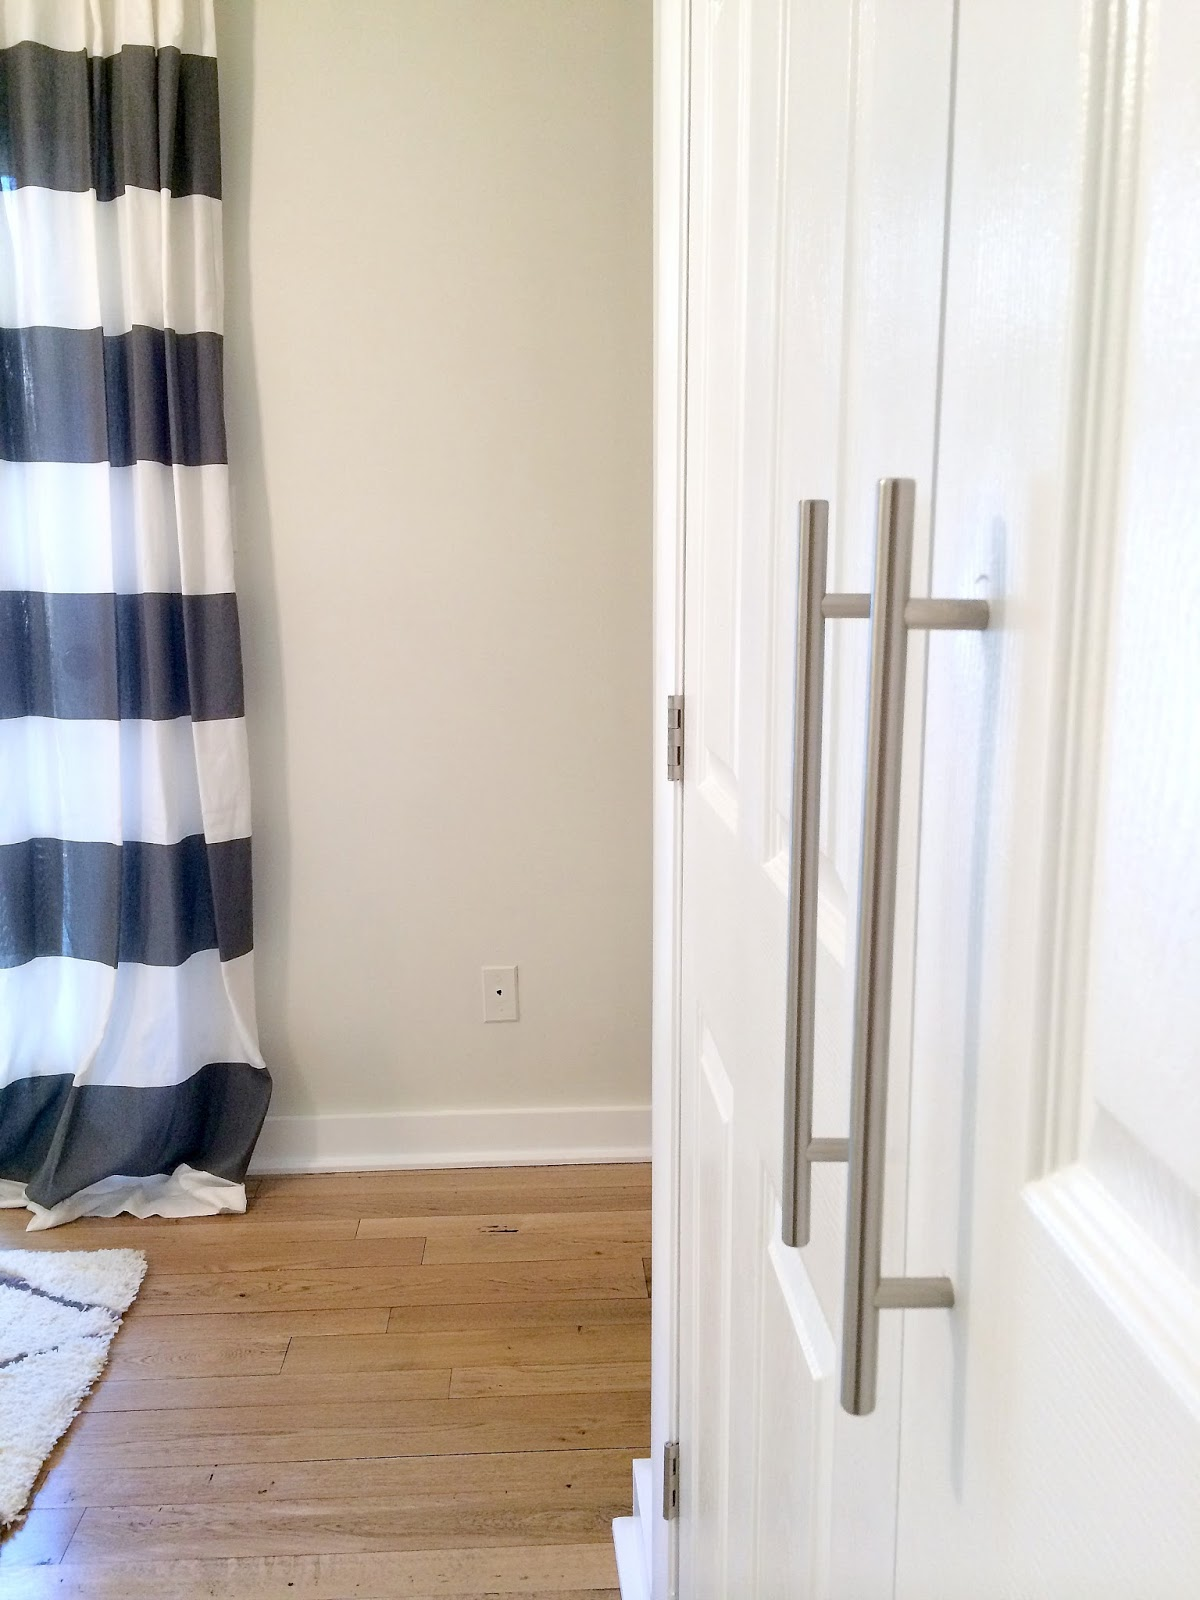 DIY Closet Door Update: How to update your old bi-fold doors to modern french doors! Love the little added touch of the door pulls, too. Such an easy update! So glad I found this!